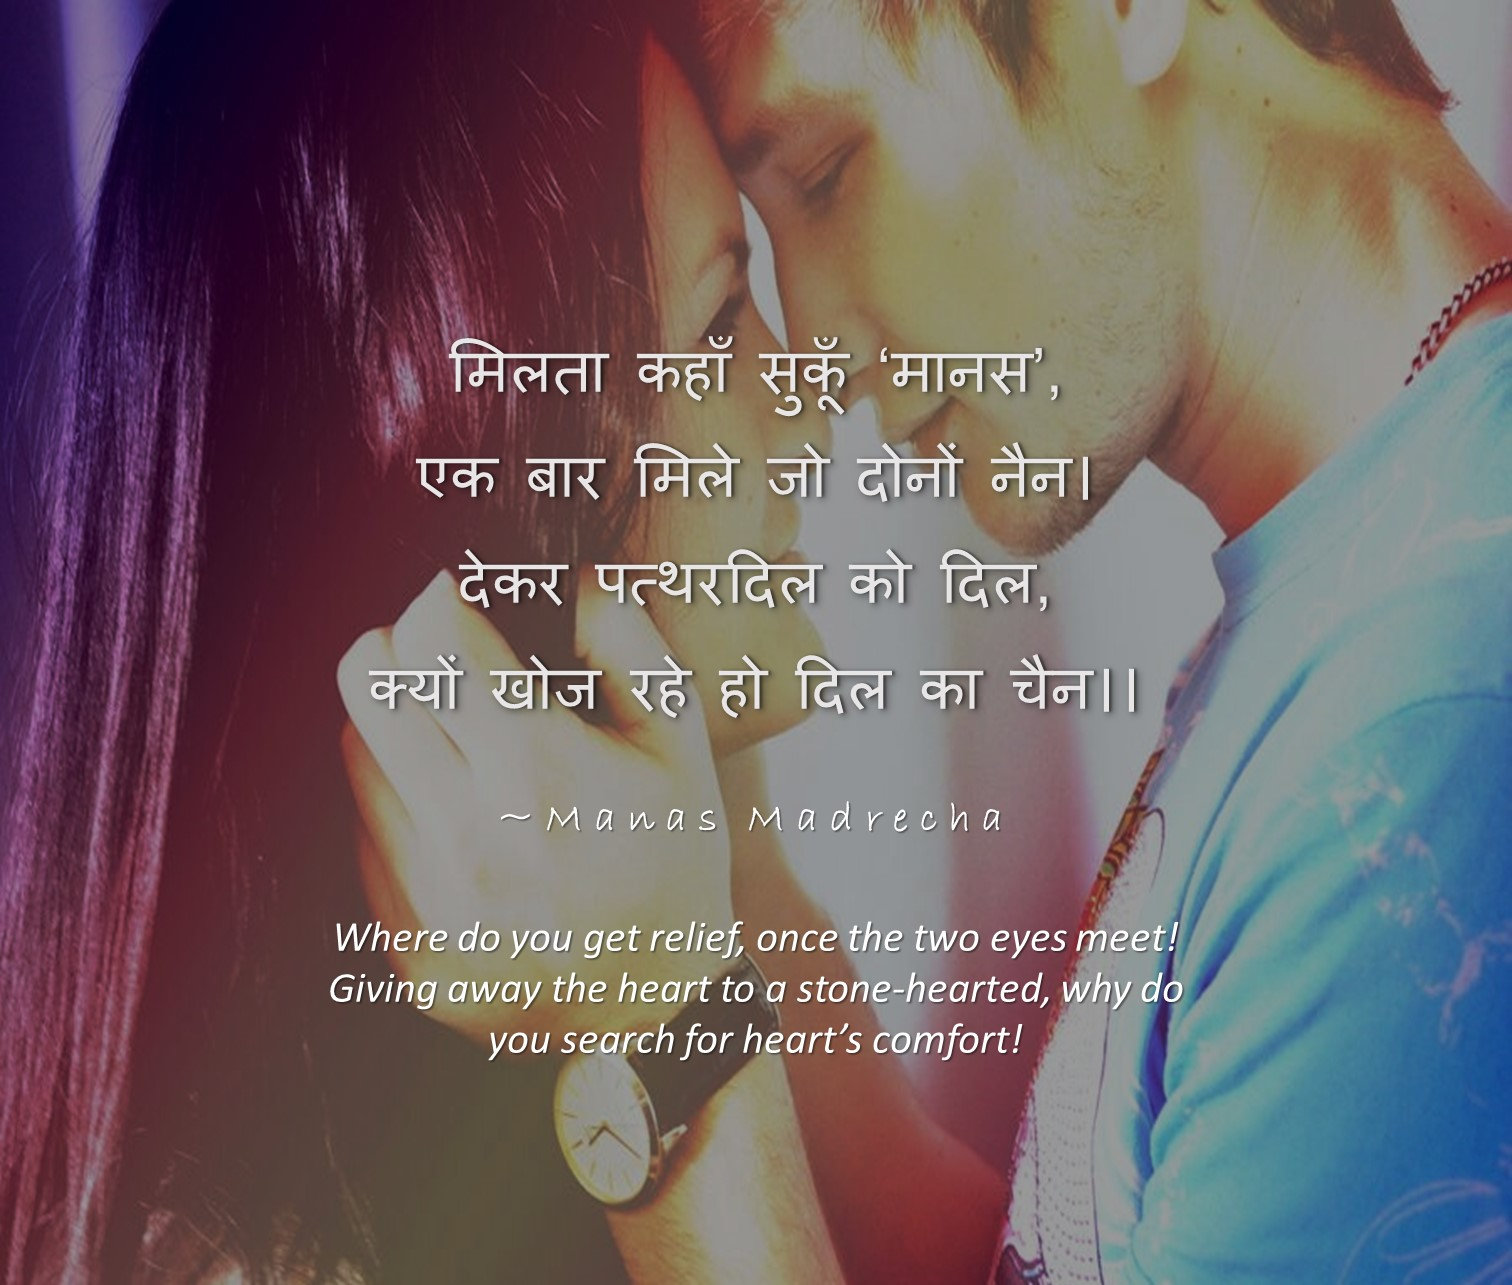 poem on love, Manas Madrecha, Manas Madrecha poems, poems by Manas Madrecha, Manas Madrecha quotes, love quotes, quotes on love, Manas Madrecha blog, simplifying universe, teenage quotes, teenage poem, youth poem, youth quotes, quotes on youth, romantic poem, beautiful girl, hot girl, girl looking, cute girl, pretty girl, handsome man, cute man, couple kissing, looking into eyes, looking into eyes love